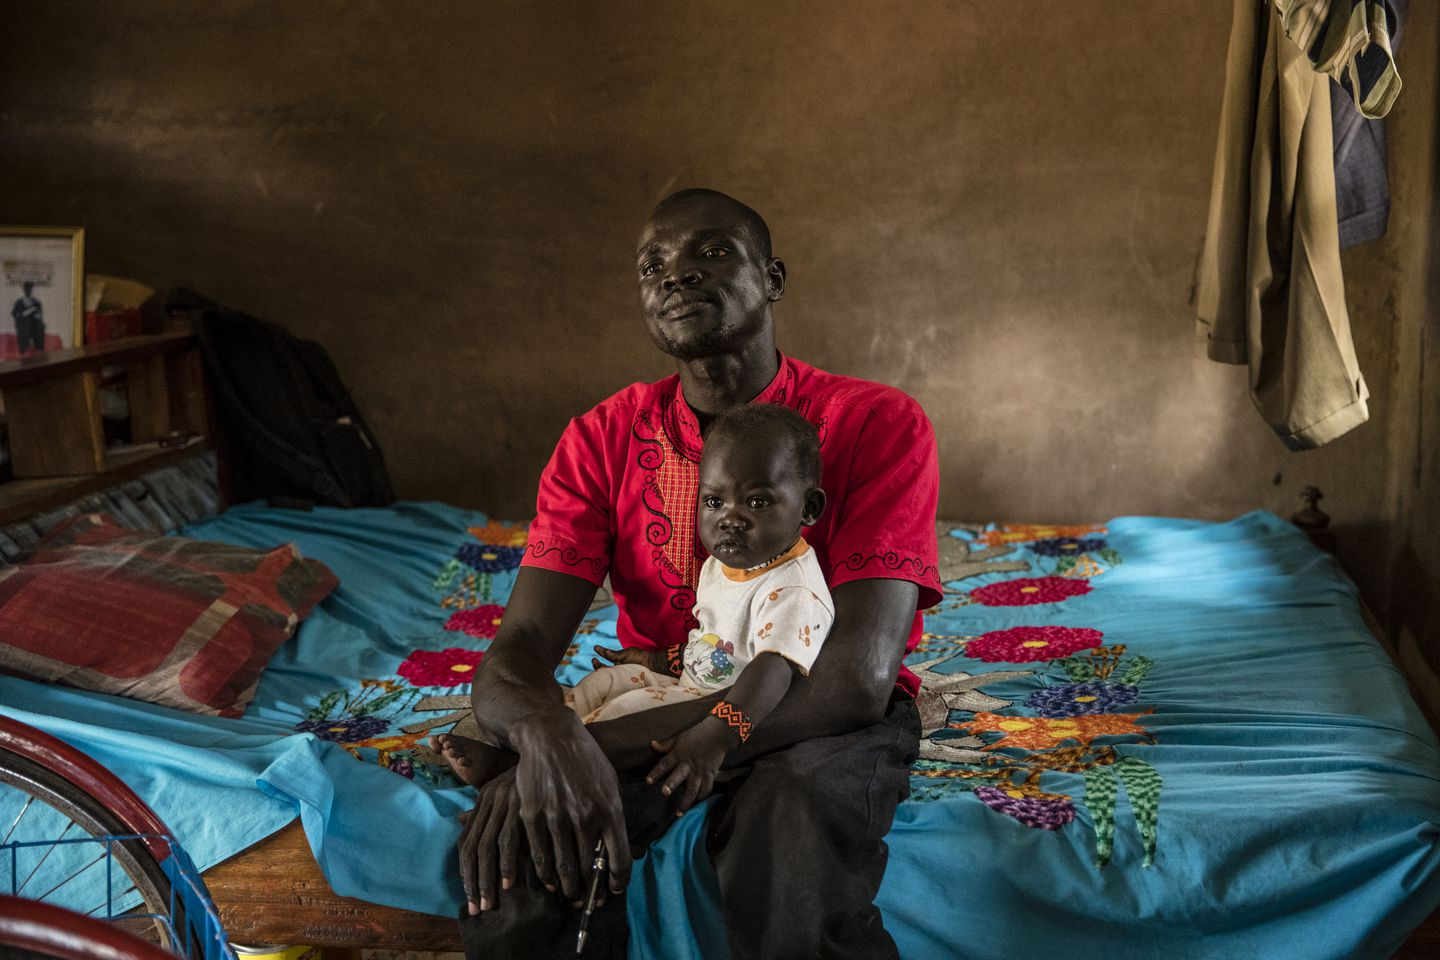 Bol Daniel Maduk, who contracted polio as a child, held his infant daughter on his lap in the compound where he lives in the UNHCR refugee camp in Kakuma.